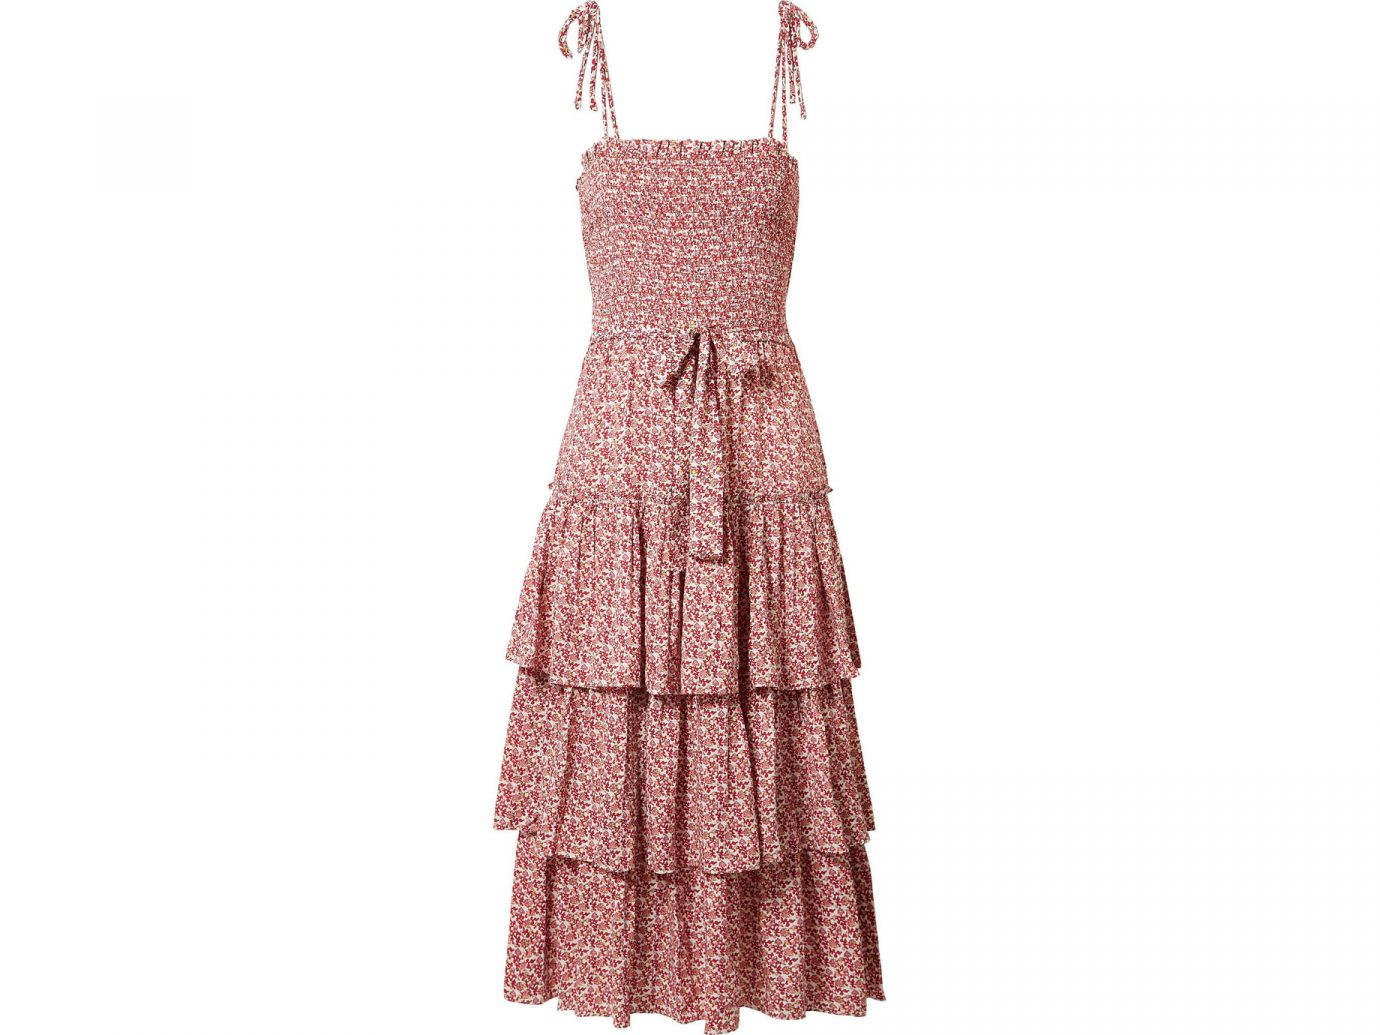 Tory Burch Ruffled smocked floral-print midi dress